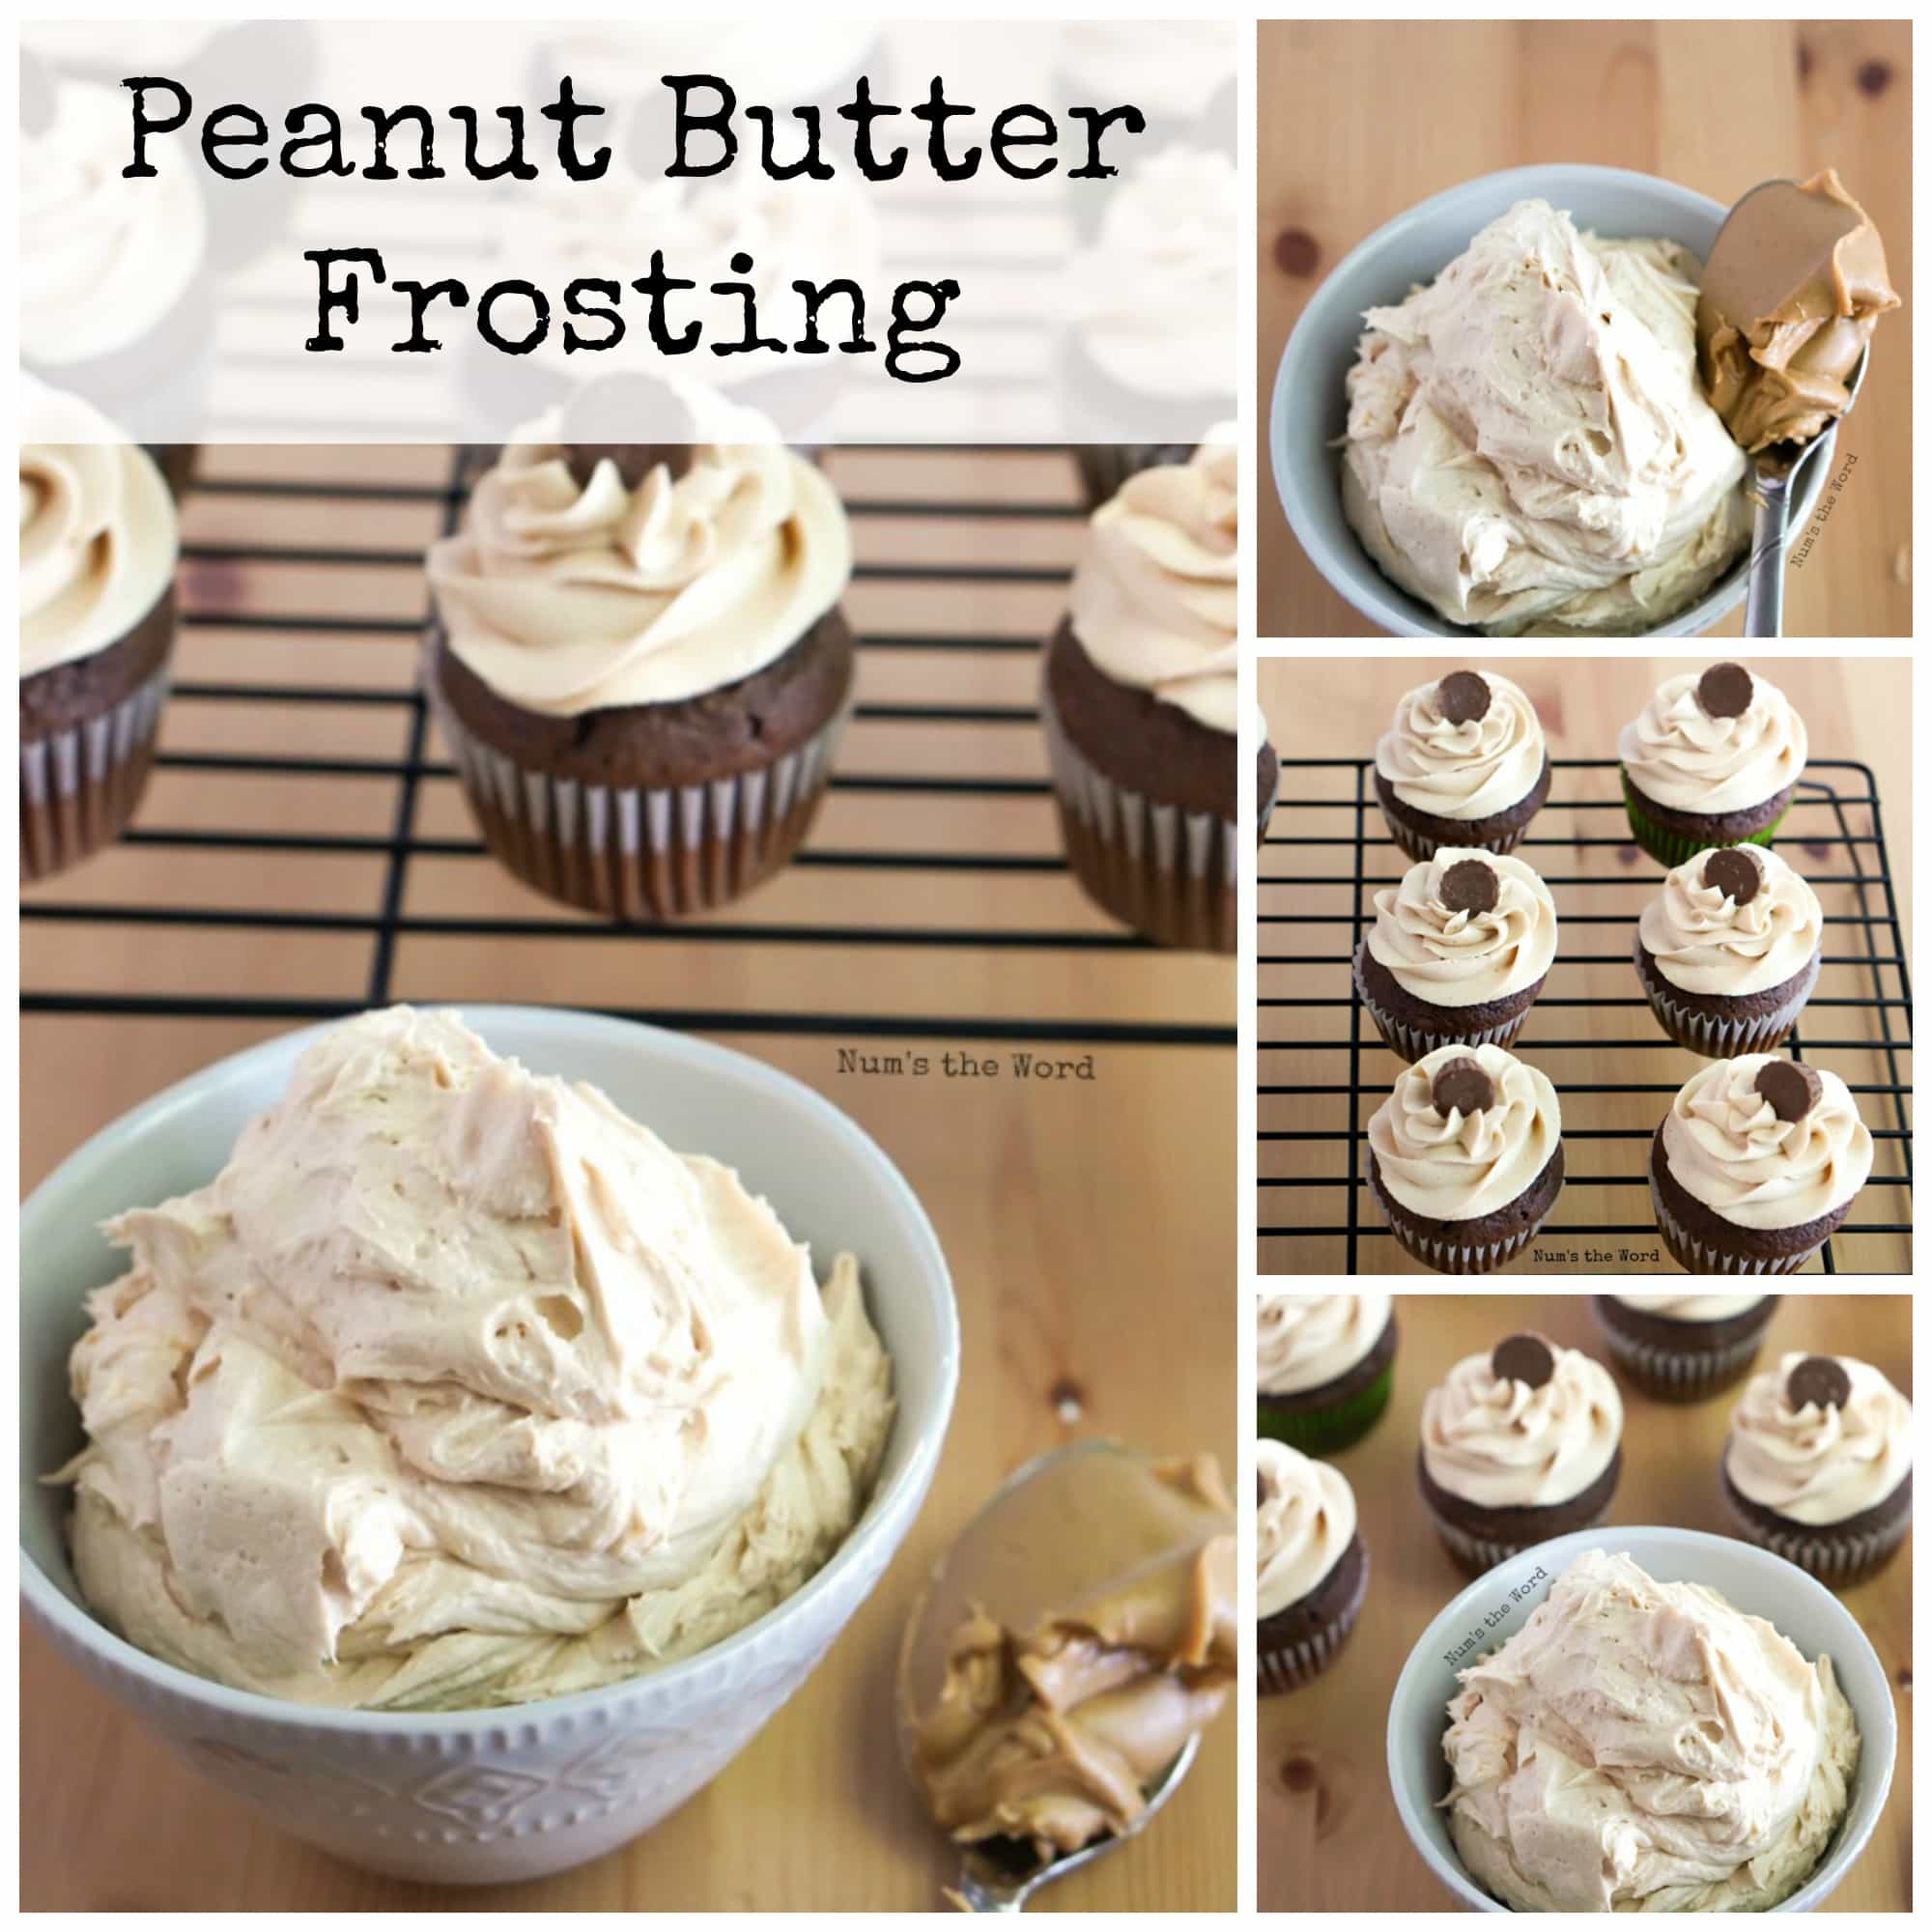 Peanut Butter Frosting Facebook Collage Photo